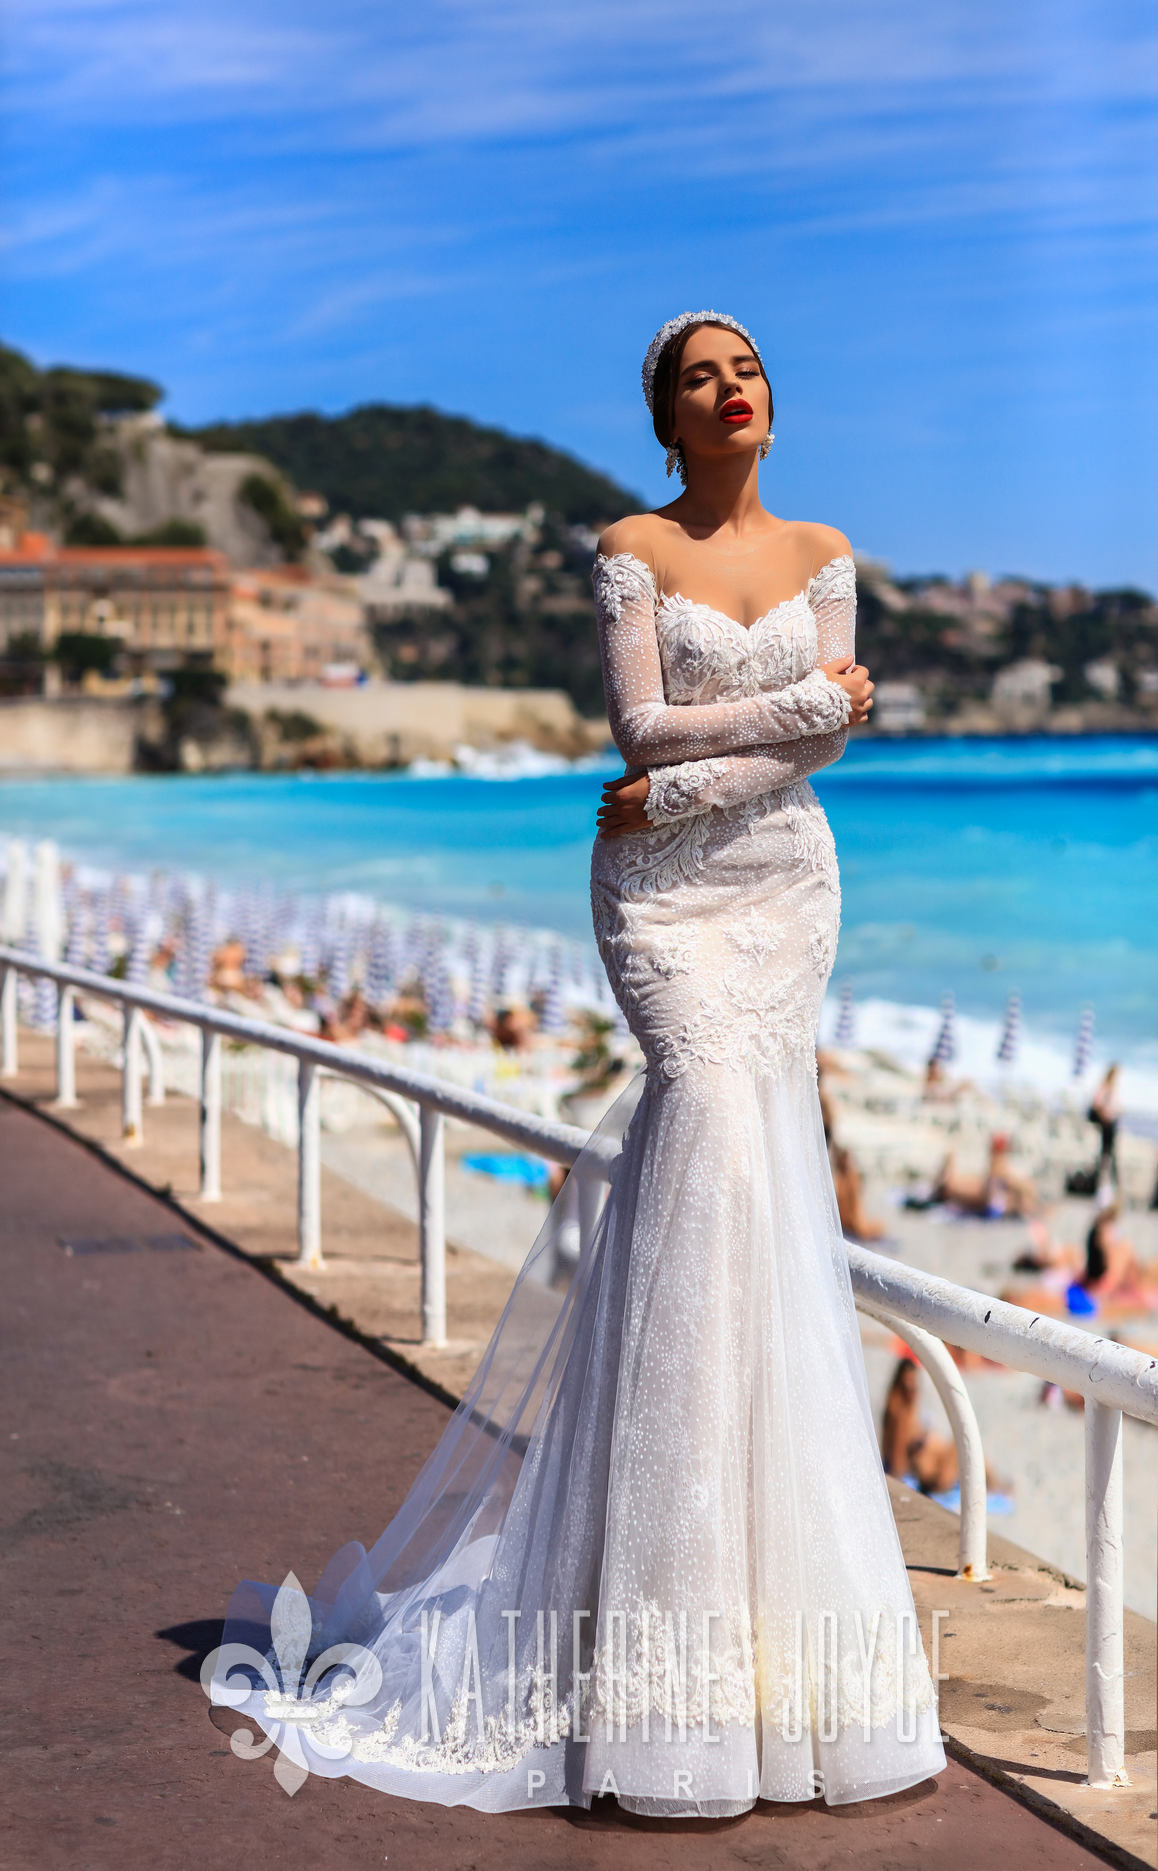 4d4ce48fe0c7 This romantic wedding dress attributes a beautiful off-the-shoulder long  sleeve on a transparent basis. A stylish mermaid wedding dress with soft  appliques ...